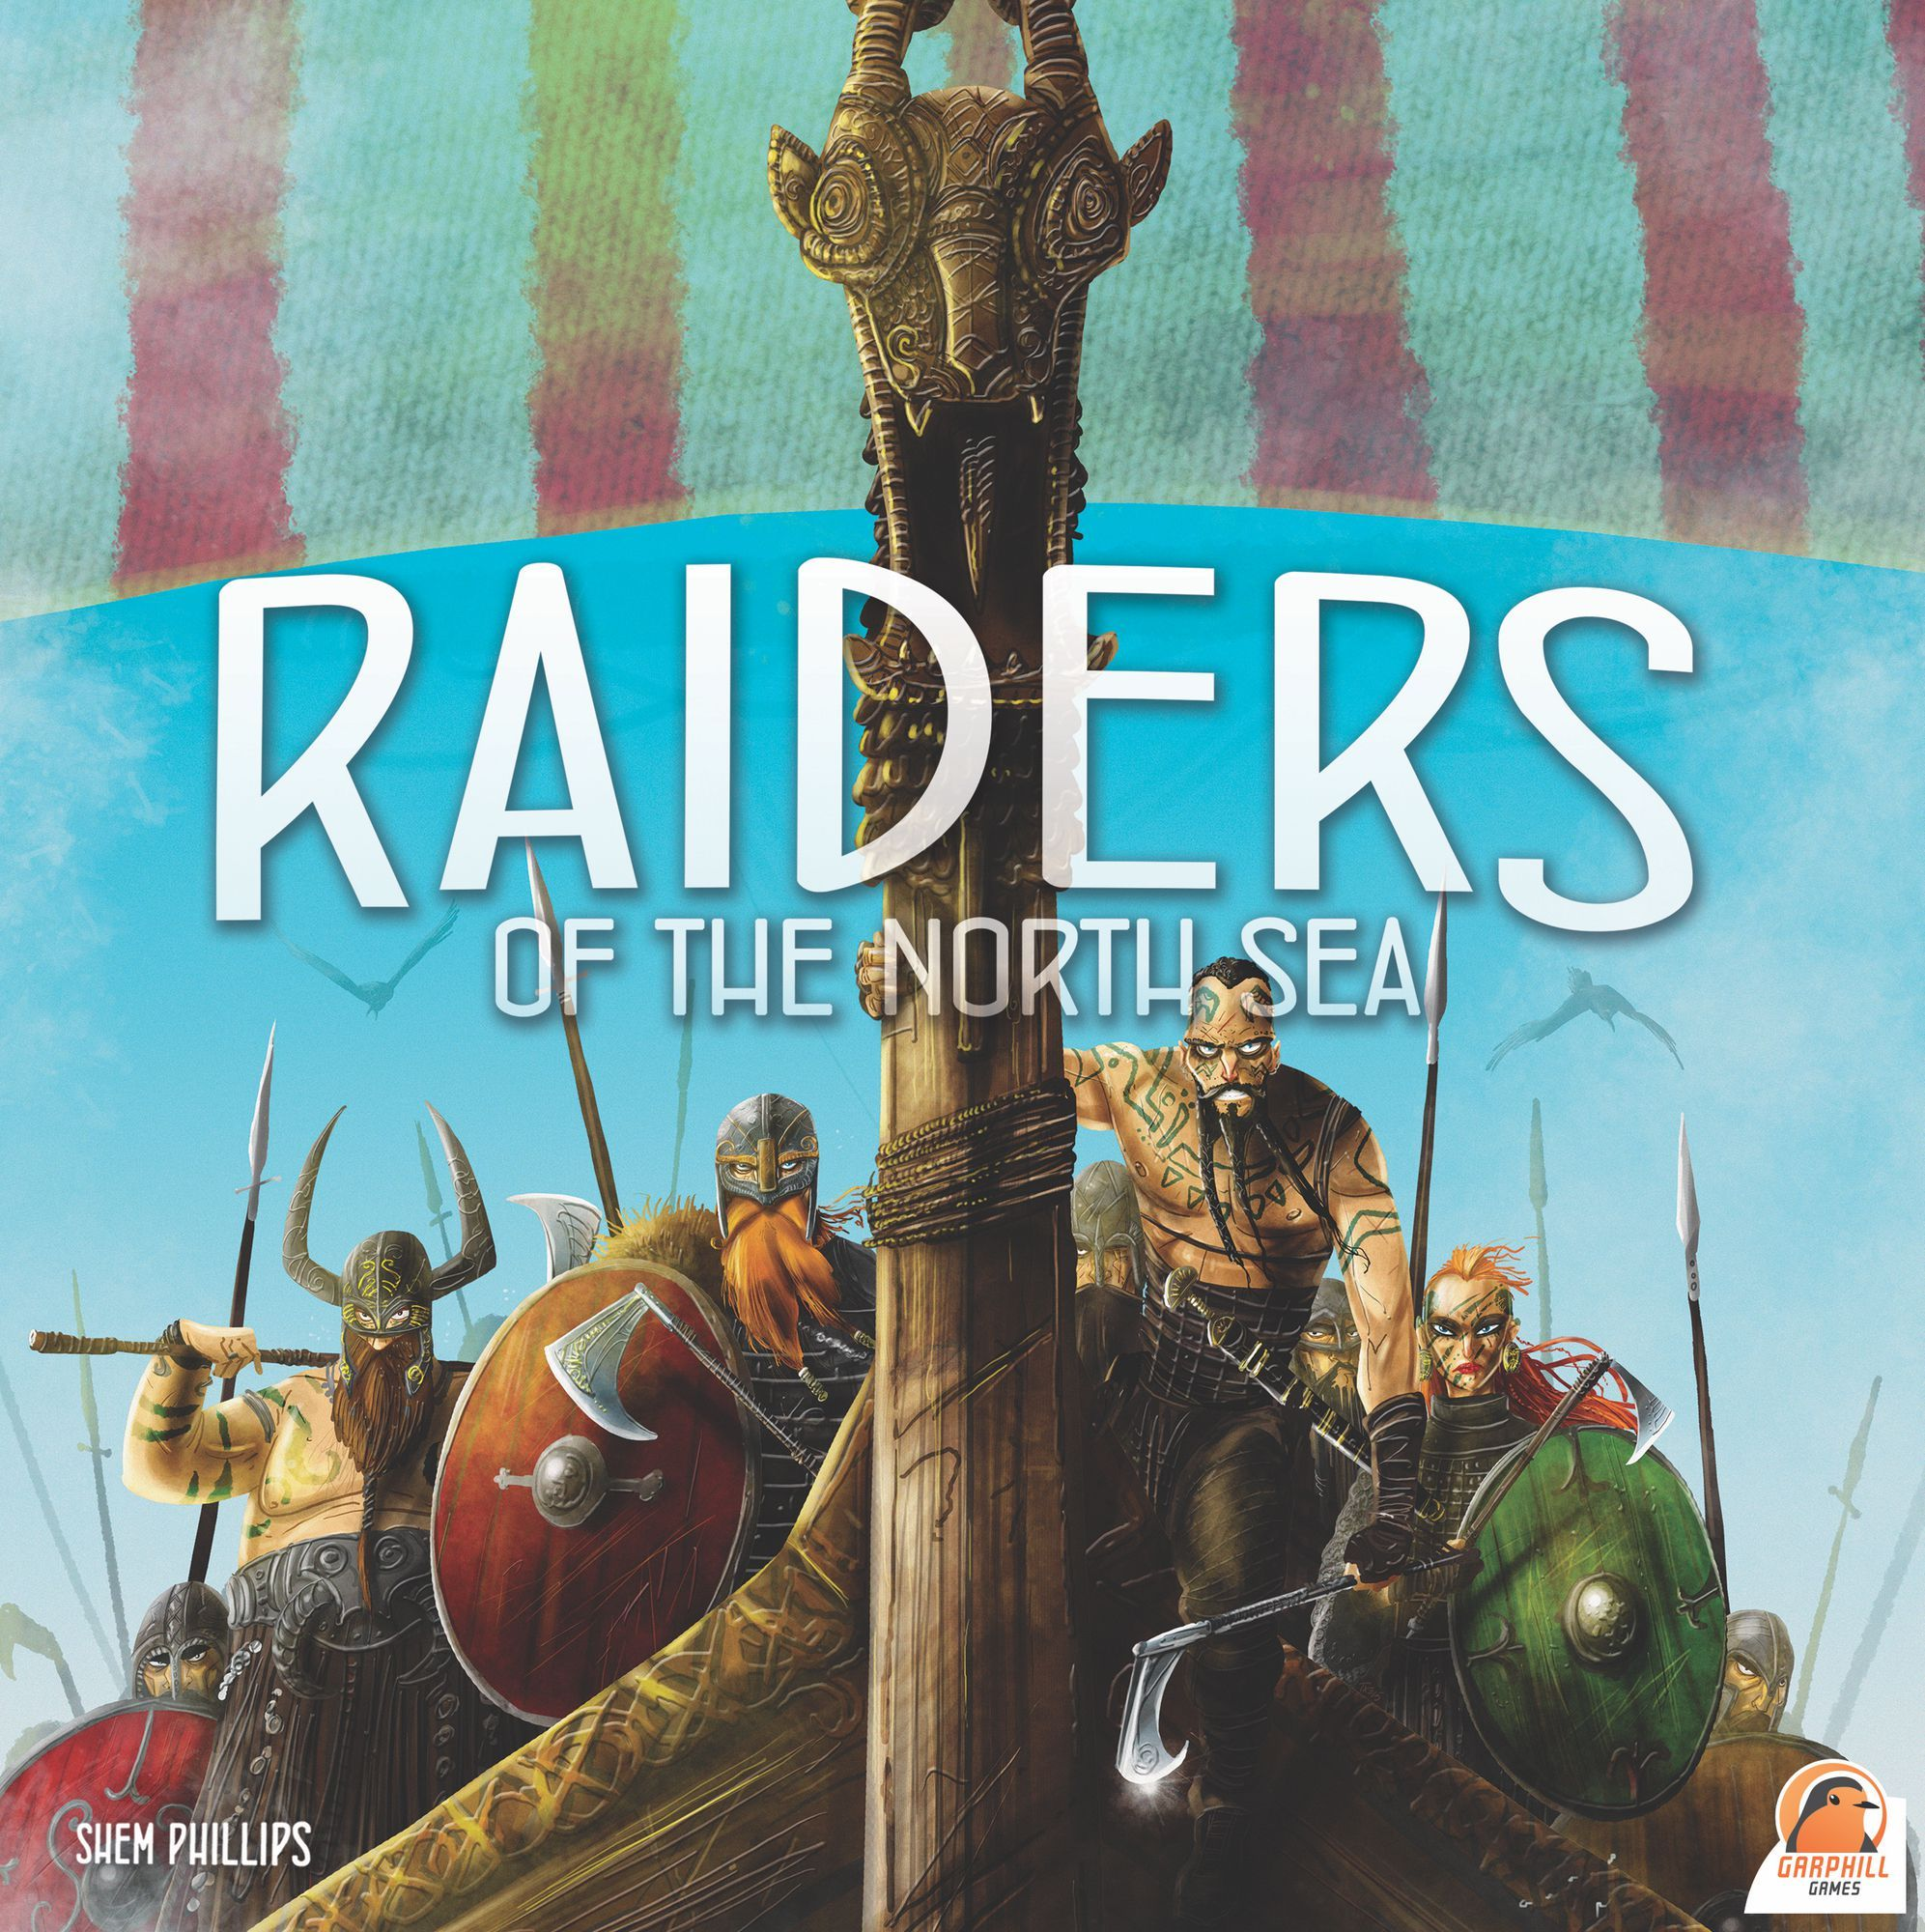 Buy Raiders of the North Sea only at Bored Game Company.